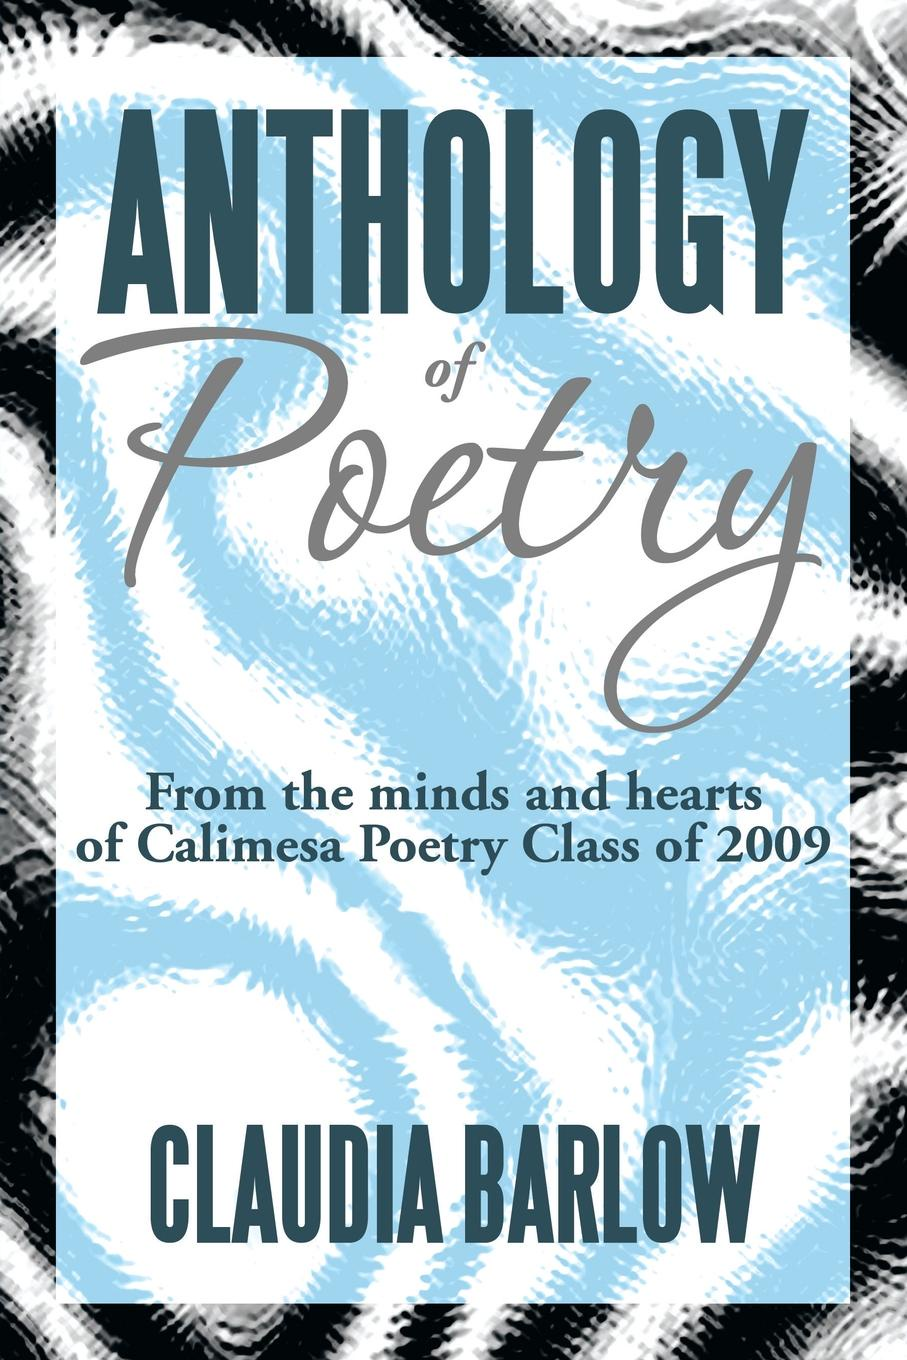 Claudia Barlow Anthology of Poetry. From the Minds and Hearts of Calimesa Poetry Class of 2009 do chong poep sa cold heart thawing the zen poetry of do chong an anthology of poetry about living in the modern world